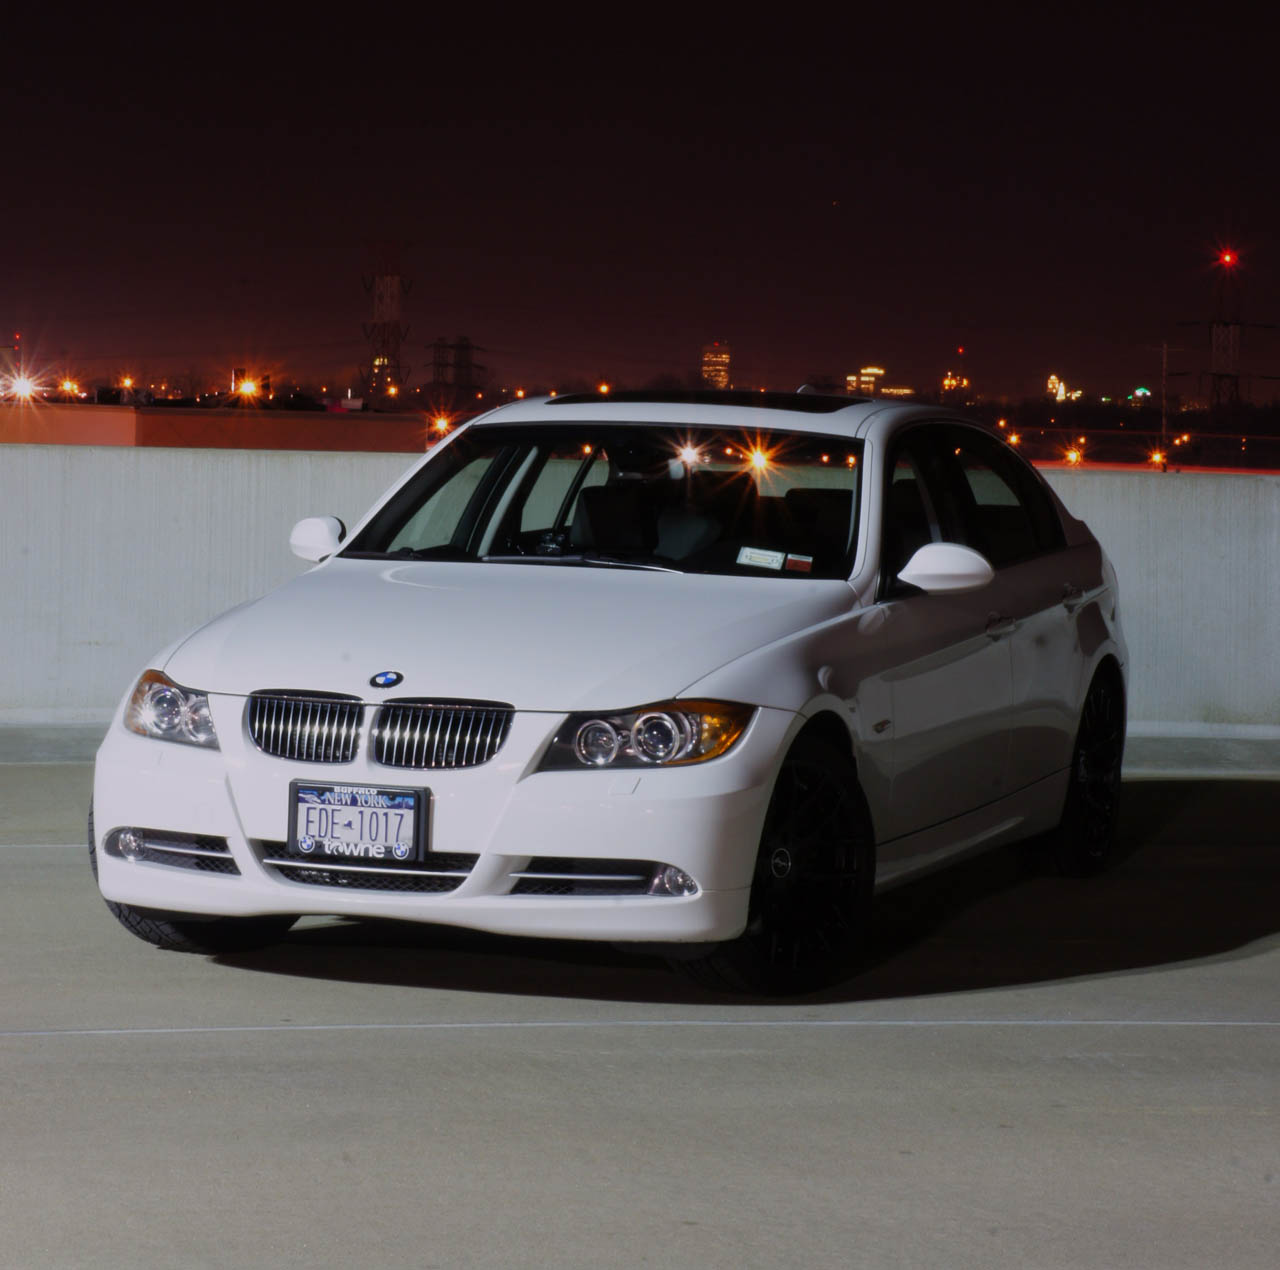 Bmw Xi: View Of BMW 335 Xi Sedan. Photos, Video, Features And